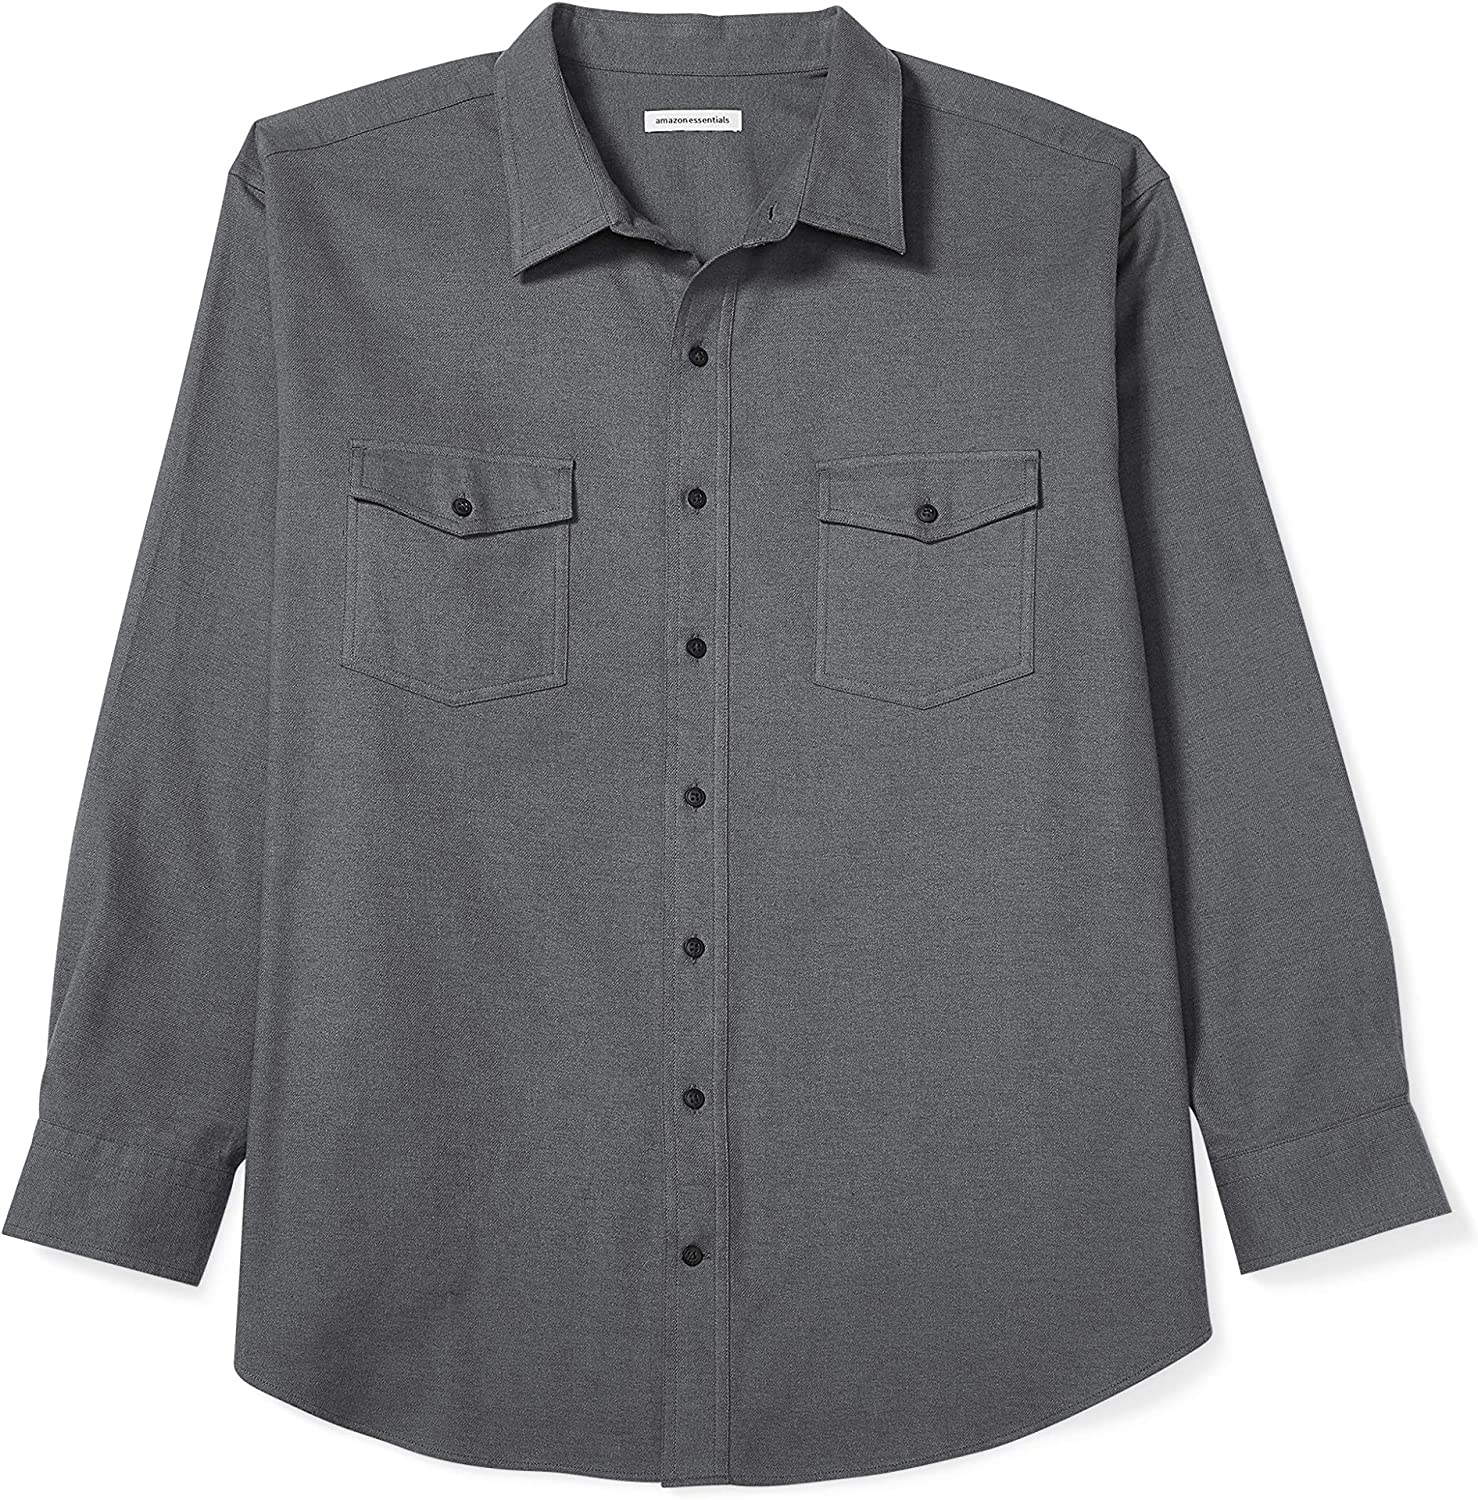 Amazon Essentials Men's Big & Tall Long-Sleeve Solid Flannel Shirt fit by DXL